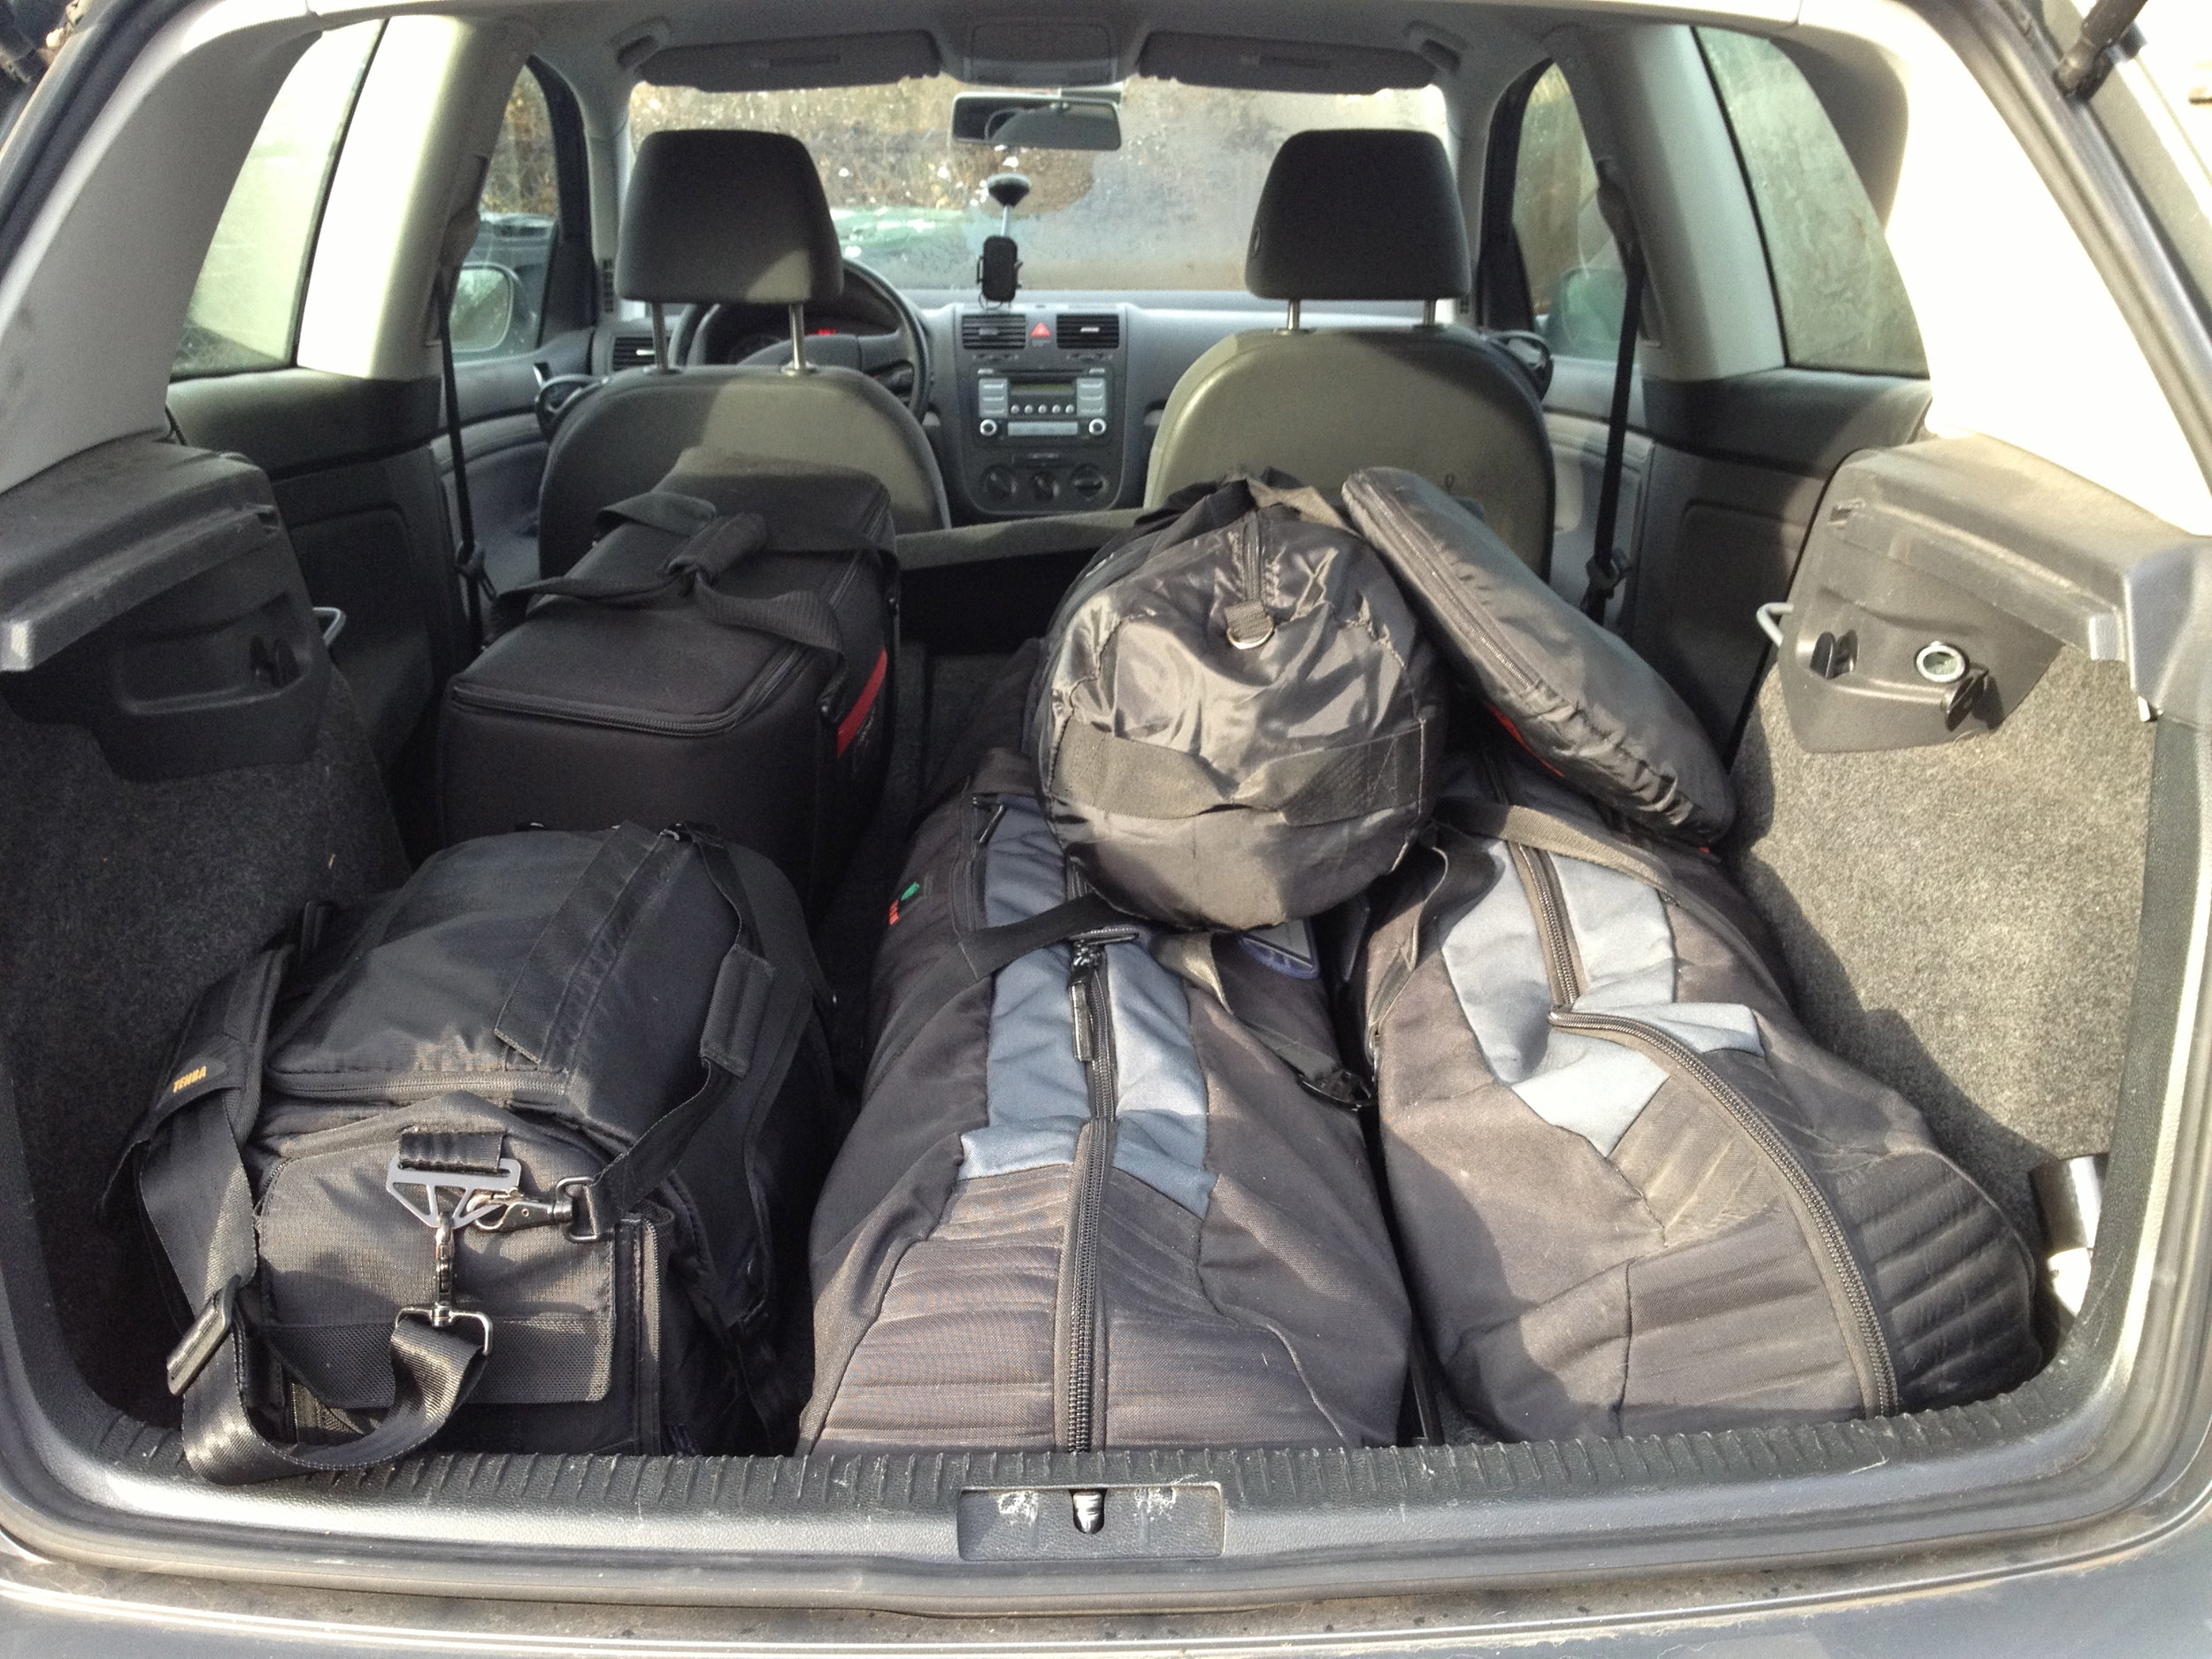 A medium amount of gear loaded into the Golf, leaving barely enough space for a photographer and an assistant